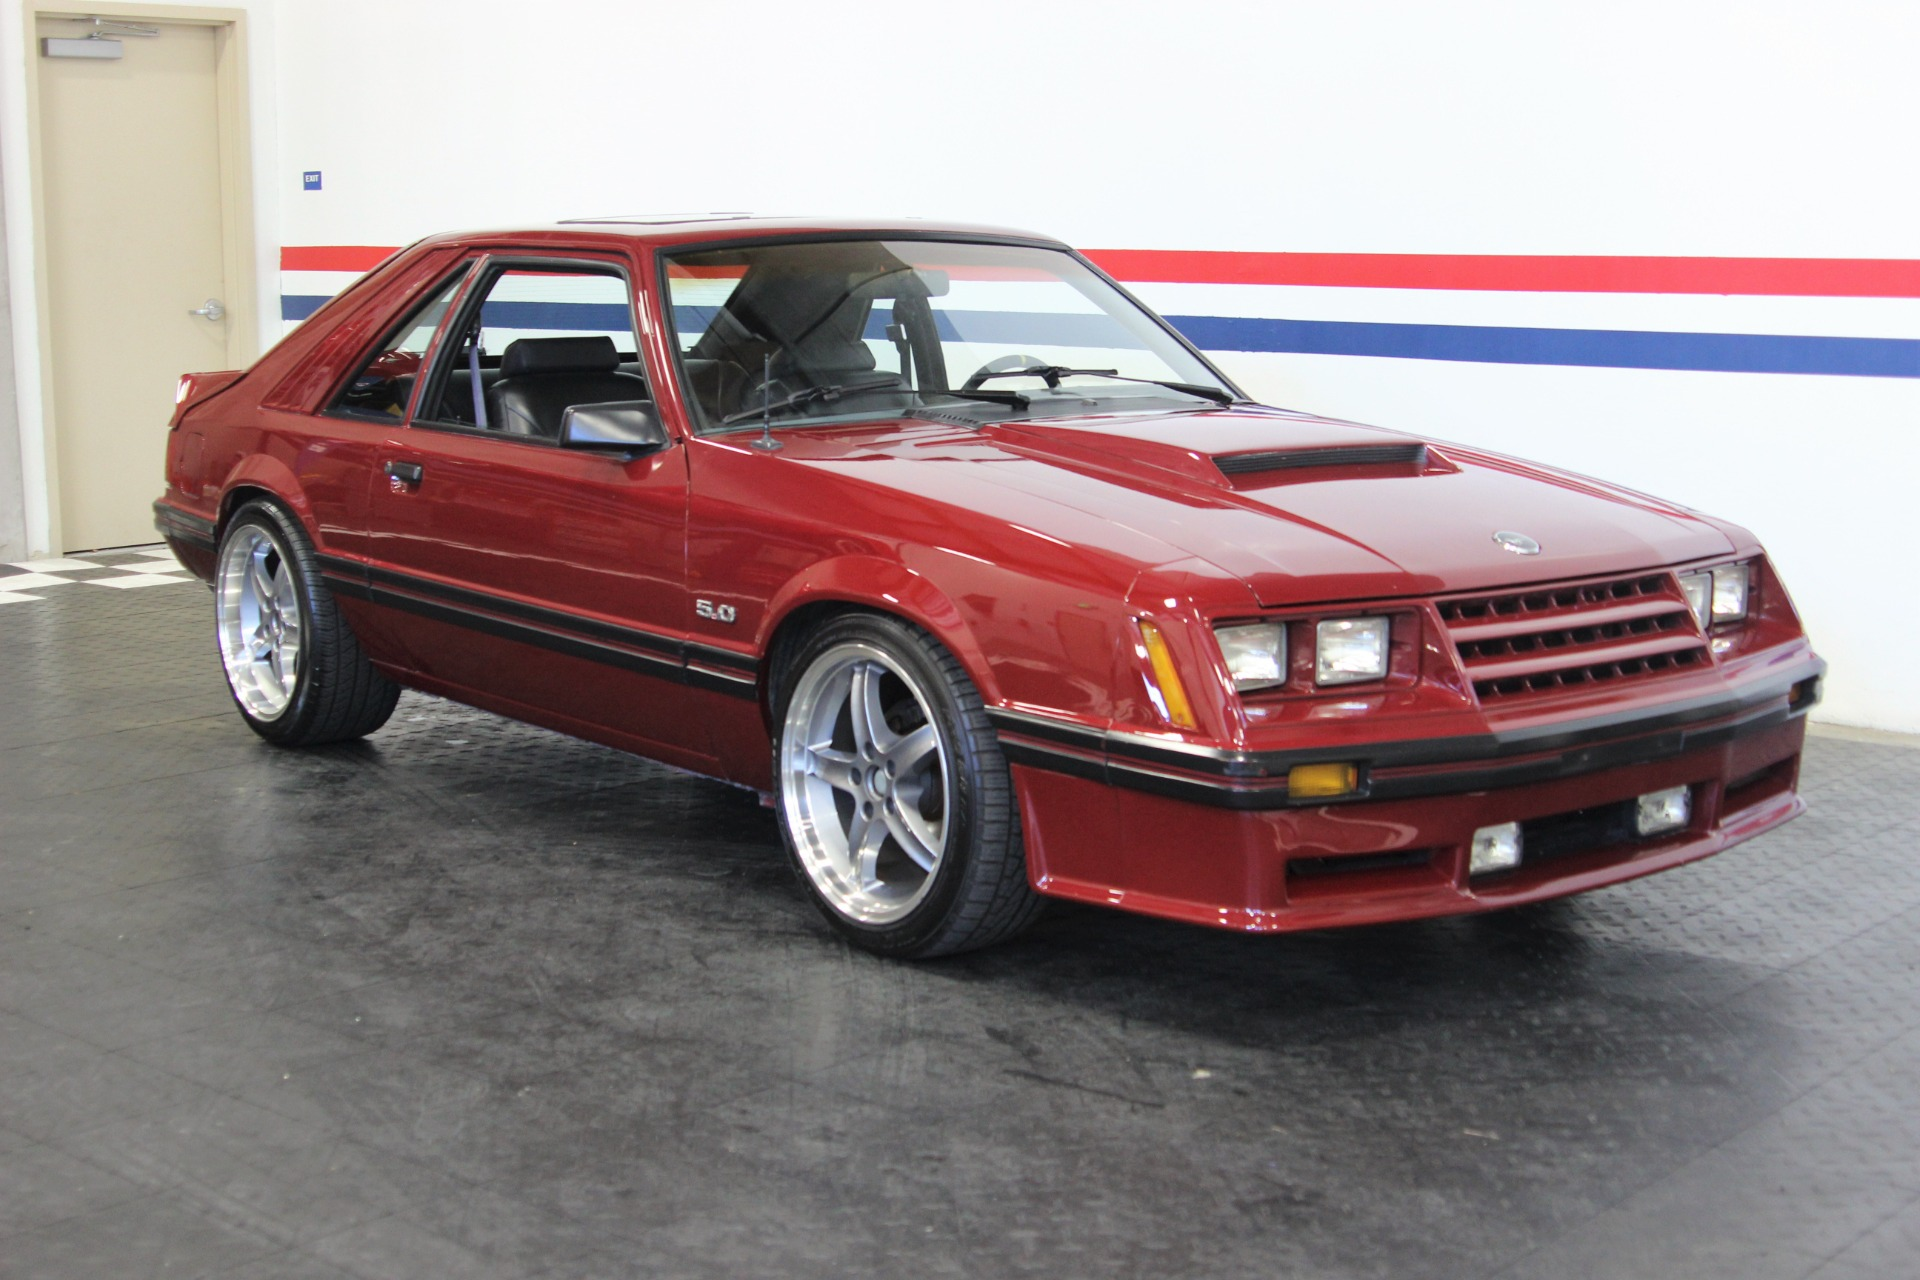 1982 Mustang Gt >> 1982 Ford Mustang GT Stock # 18065 for sale near San Ramon